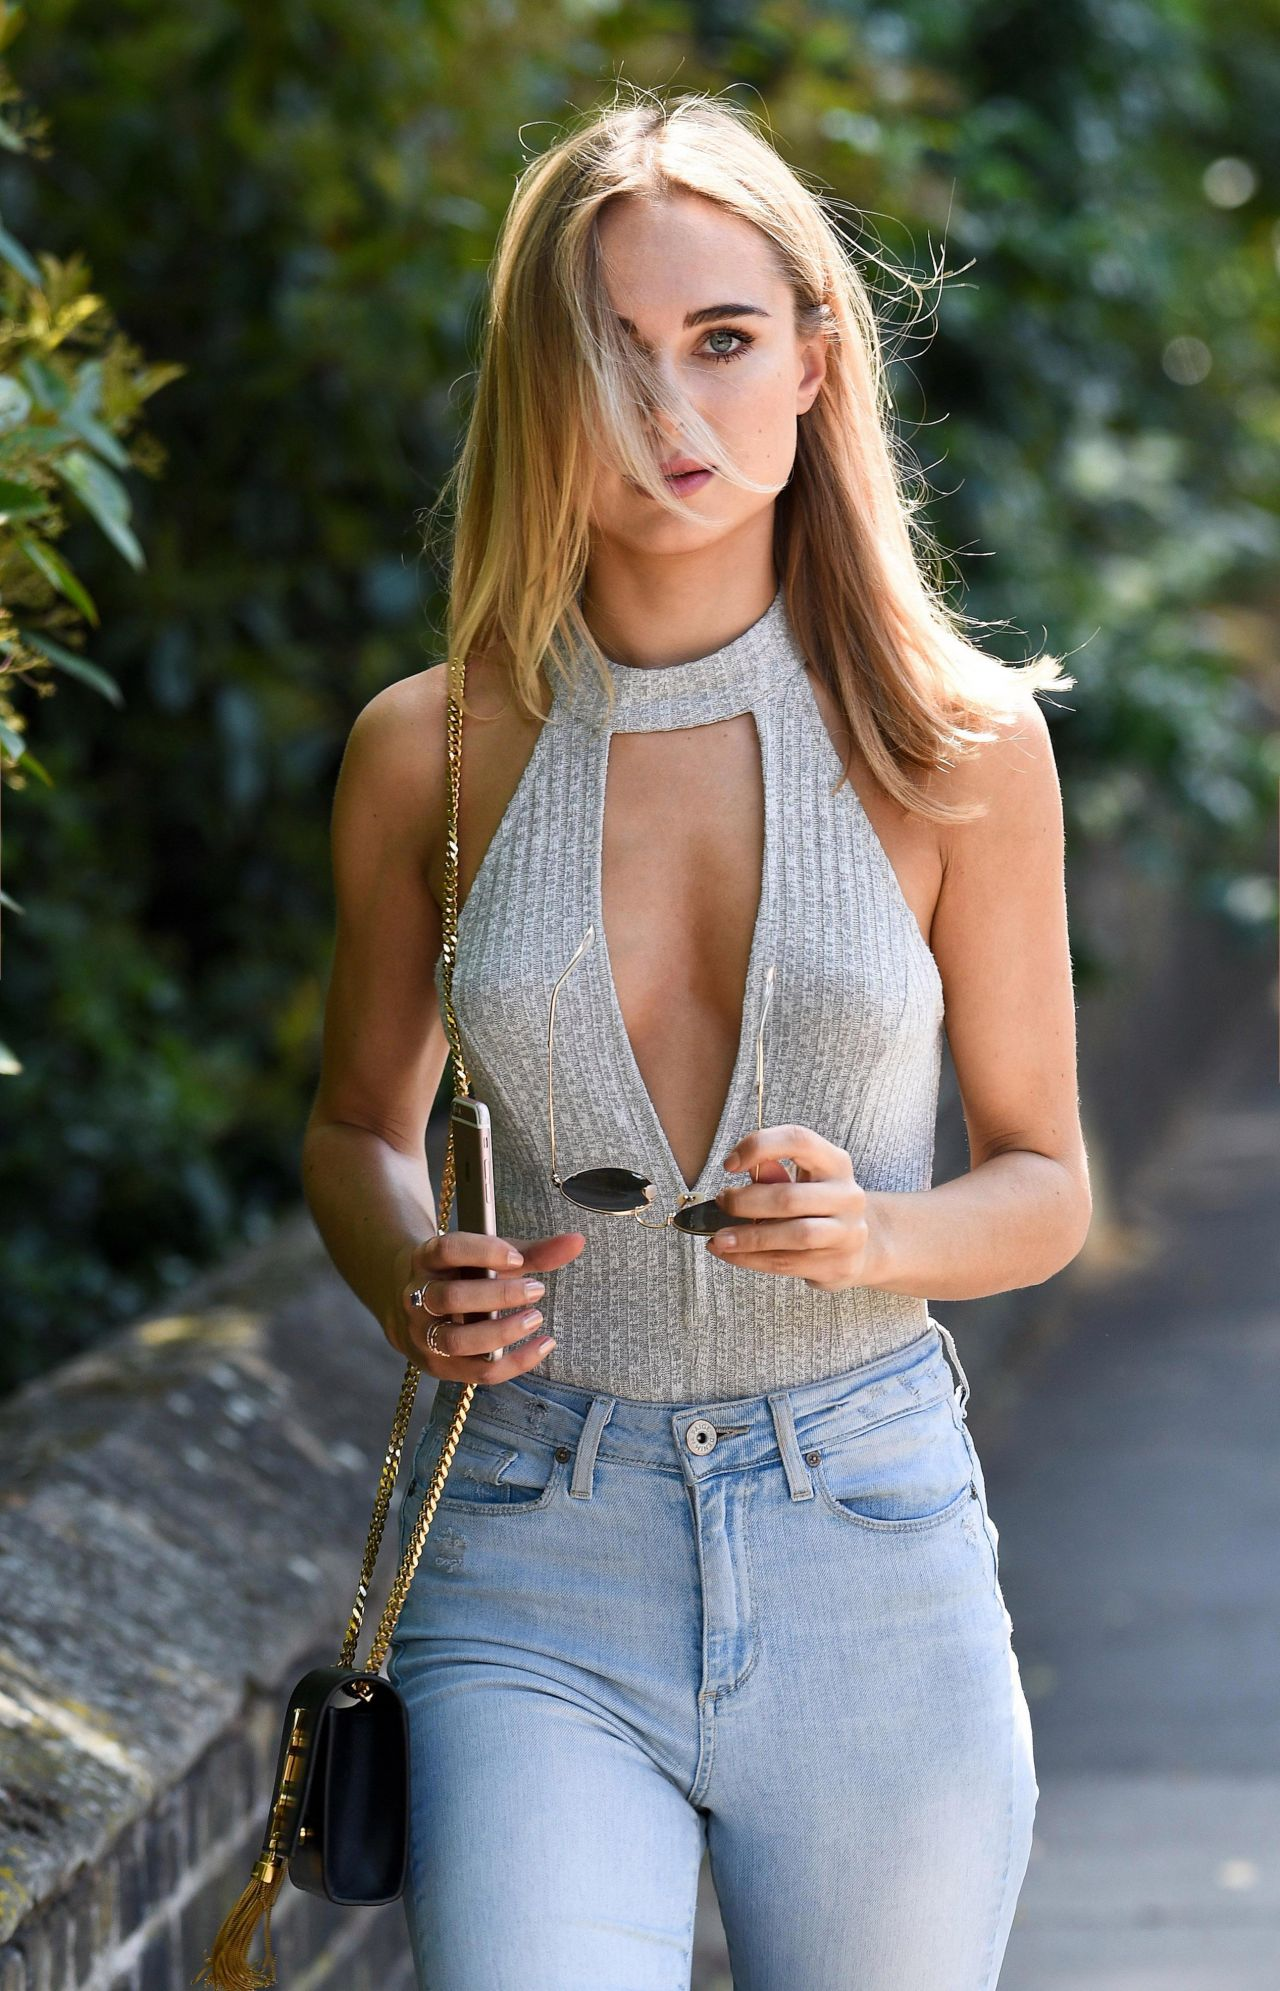 Kimberley Garner In Tight Jeans - Running Errands In -2476